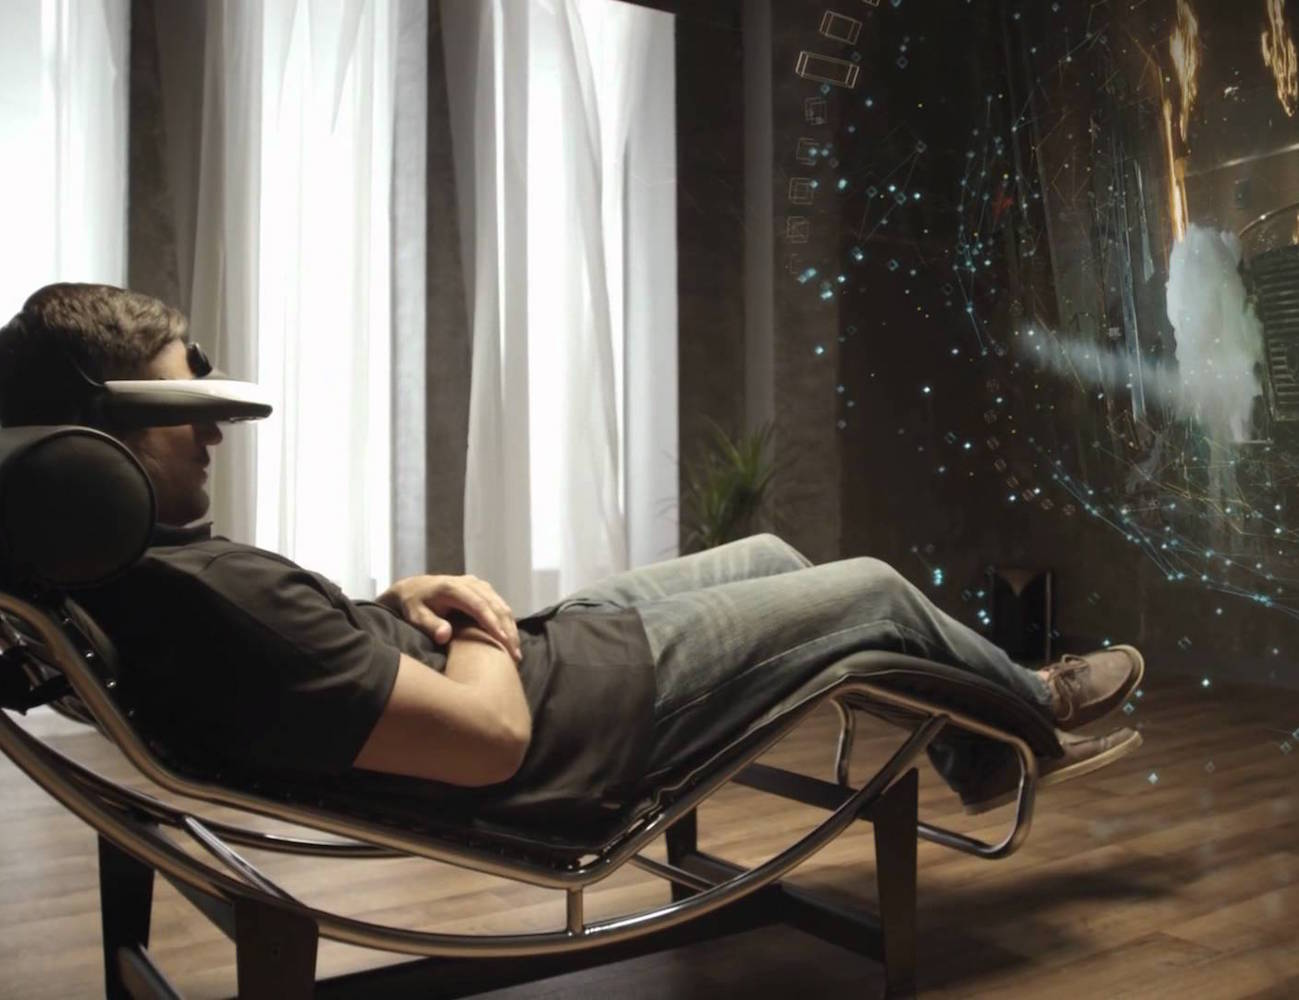 Personal 3D Viewer – Head Mounted Display by Sony